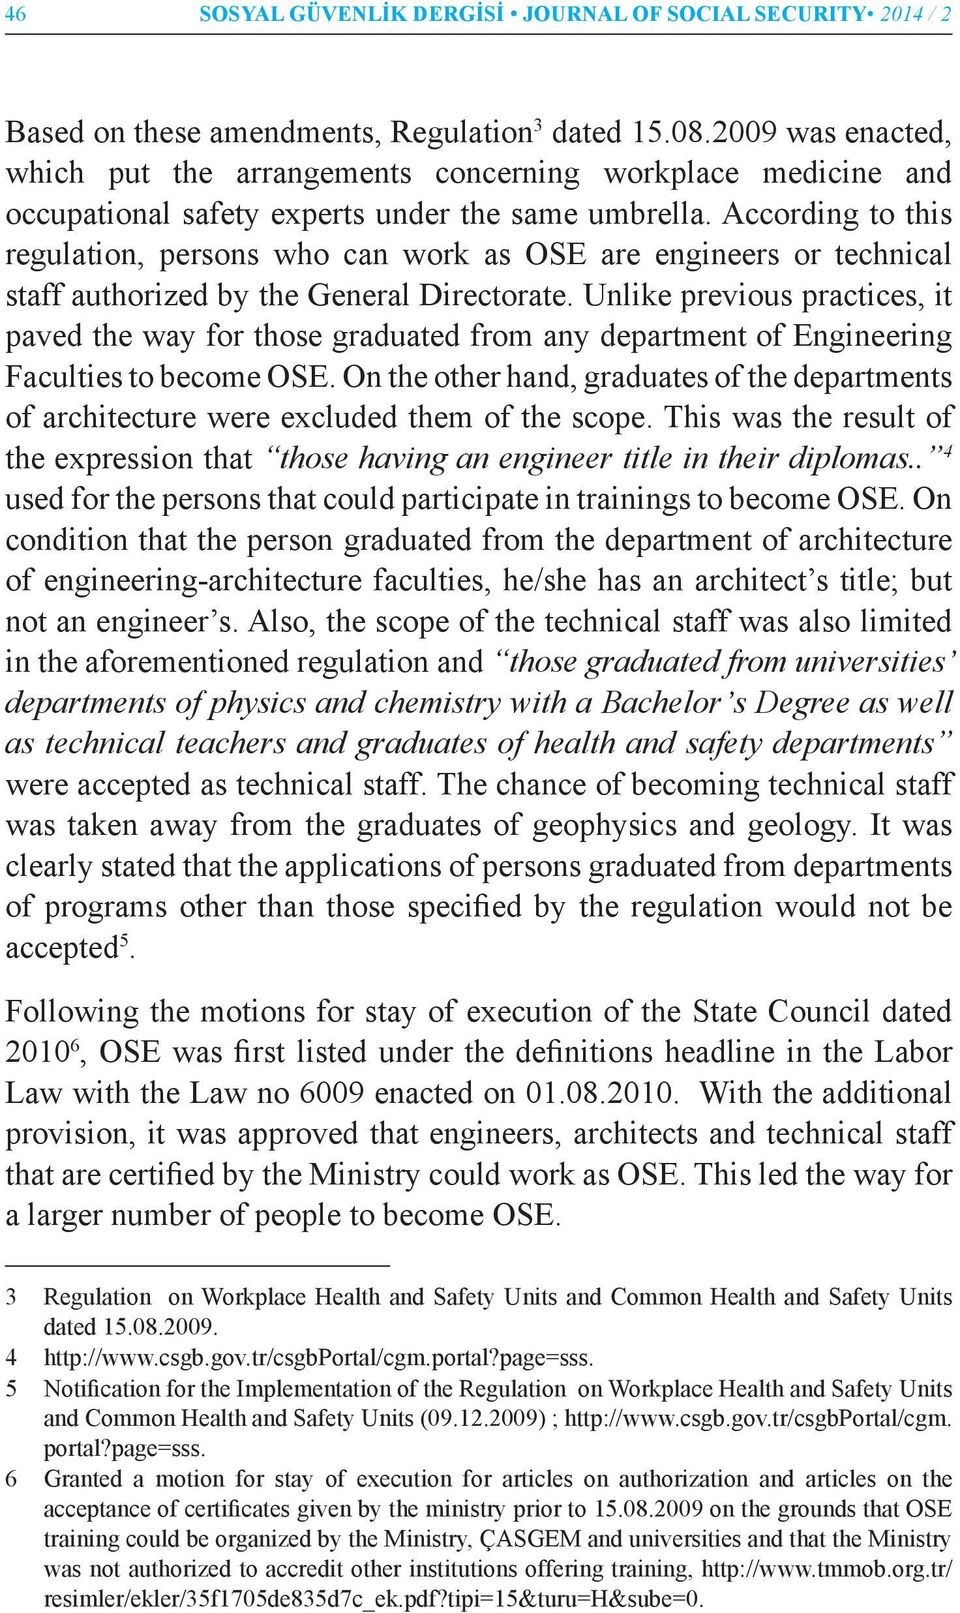 According to this regulation, persons who can work as OSE are engineers or technical staff authorized by the General Directorate.